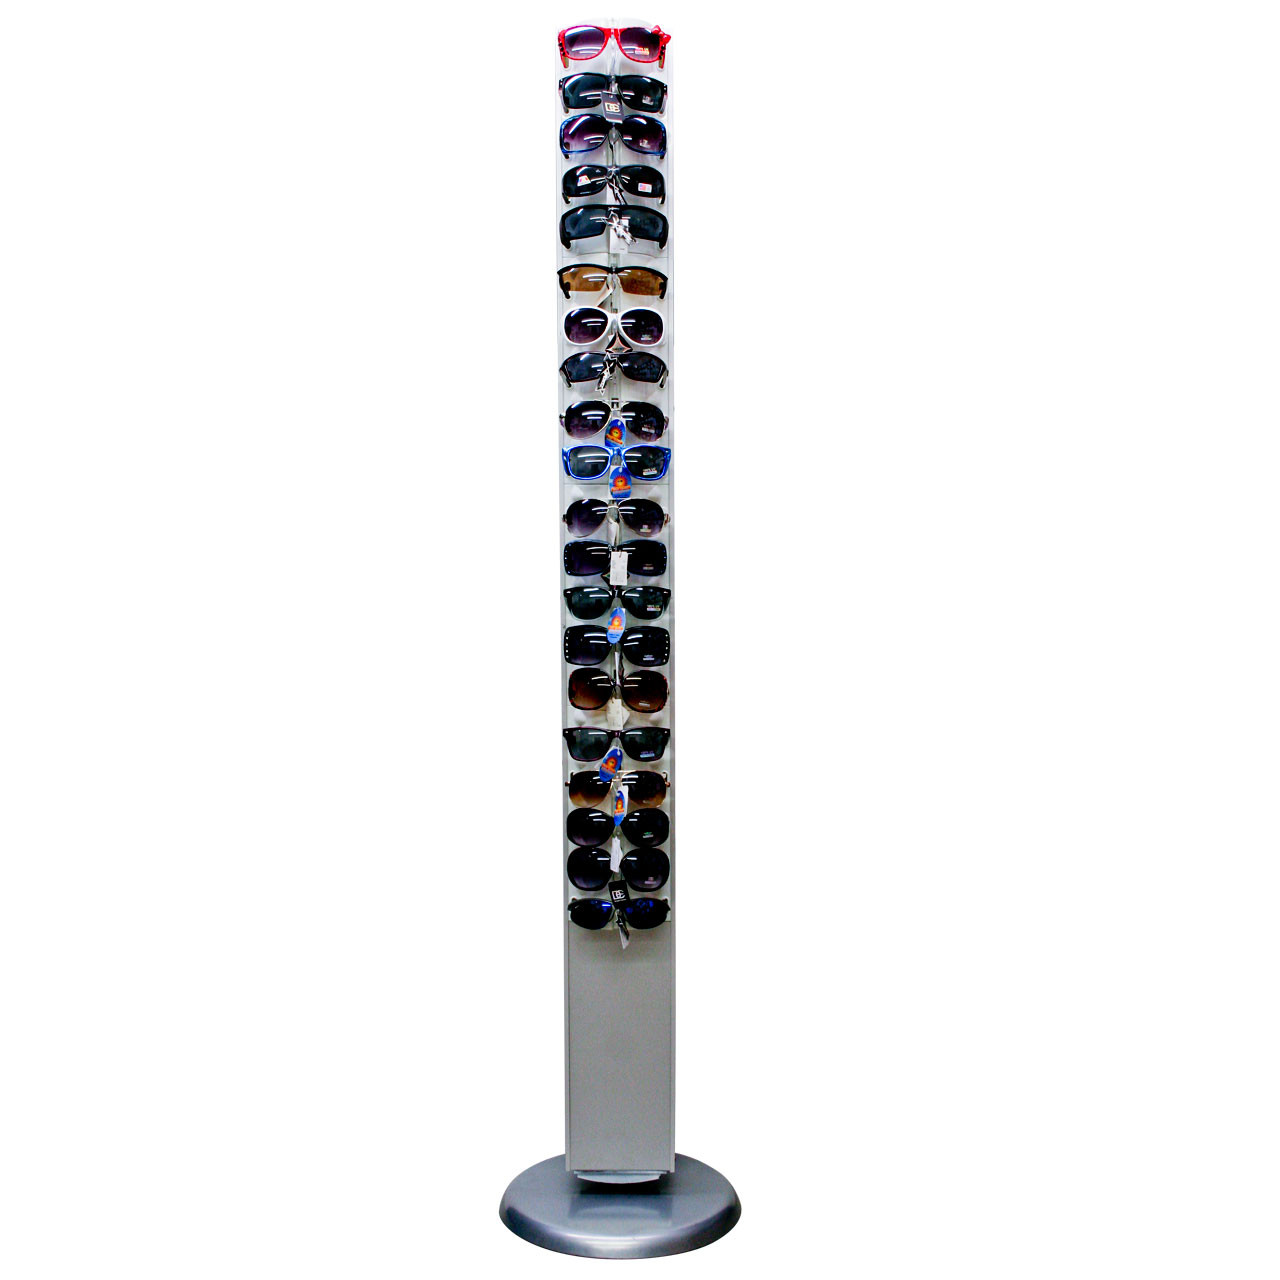 Wholesale Floor Model Rotating Sunglass Display (1 pc.) Holds 40 Pair